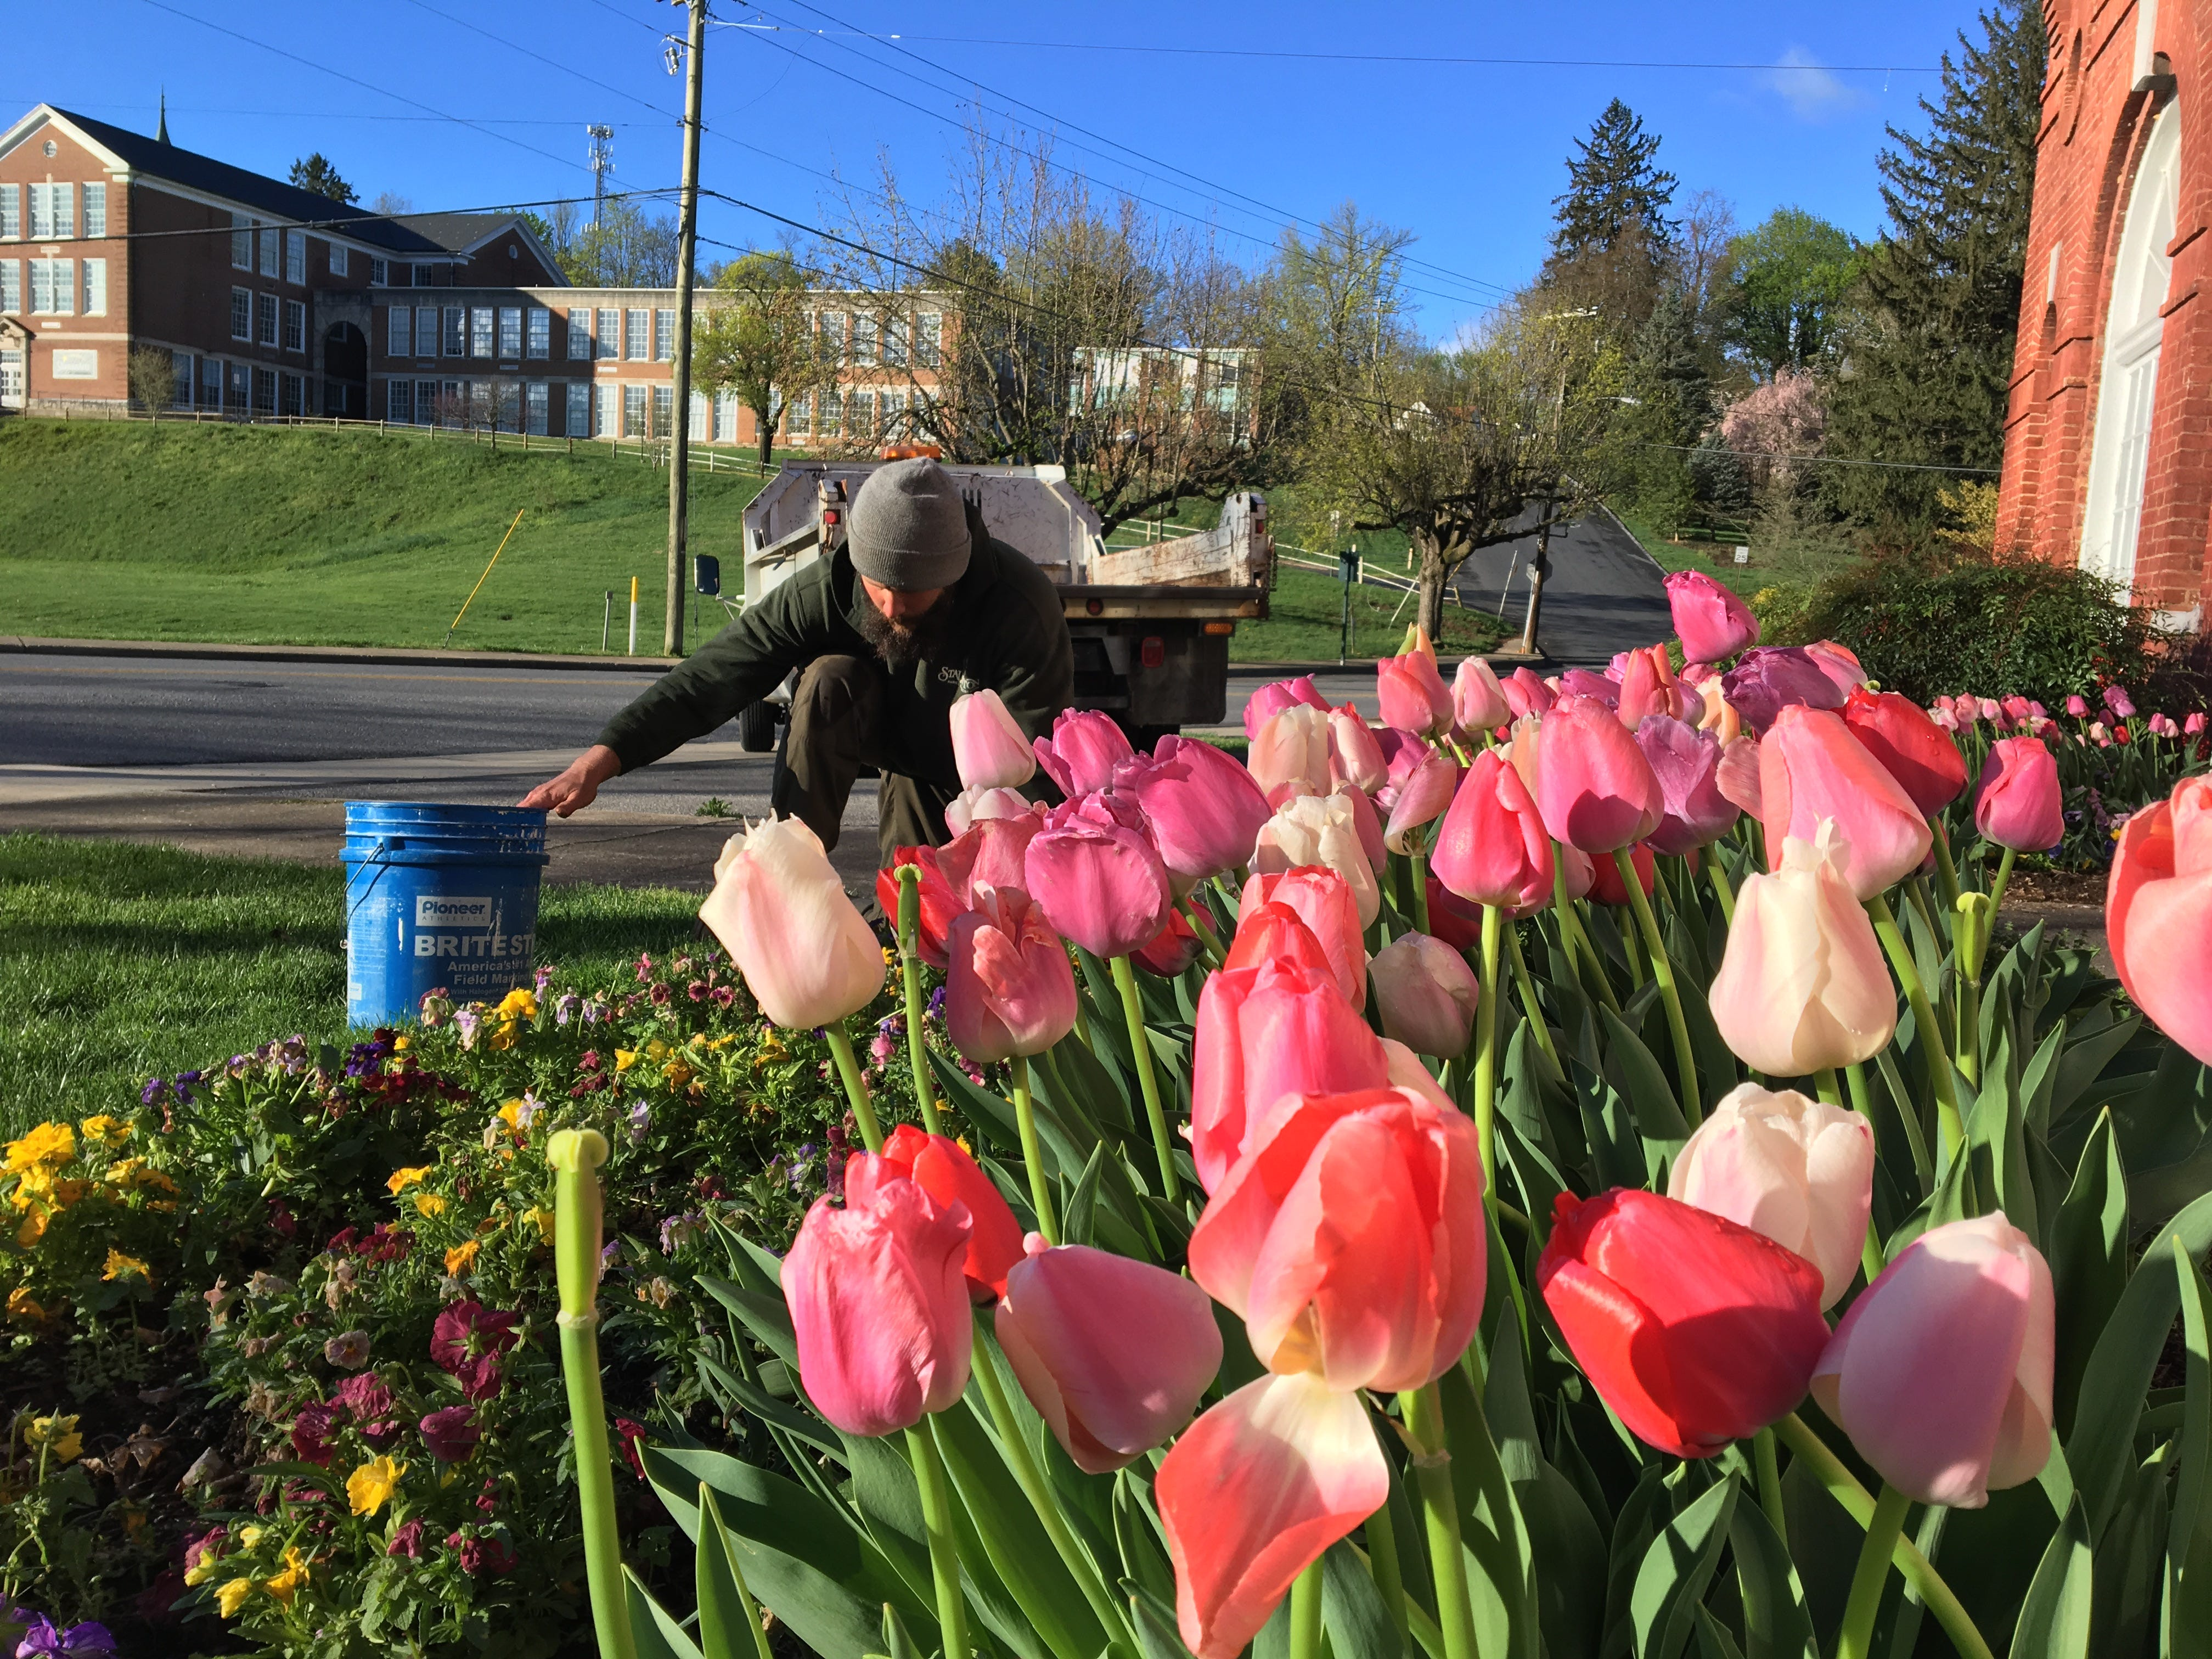 Tulips tend to bloom faster outside of the Stonewall Brigade Band Bandroom because the asphalt makes the soil warmer.